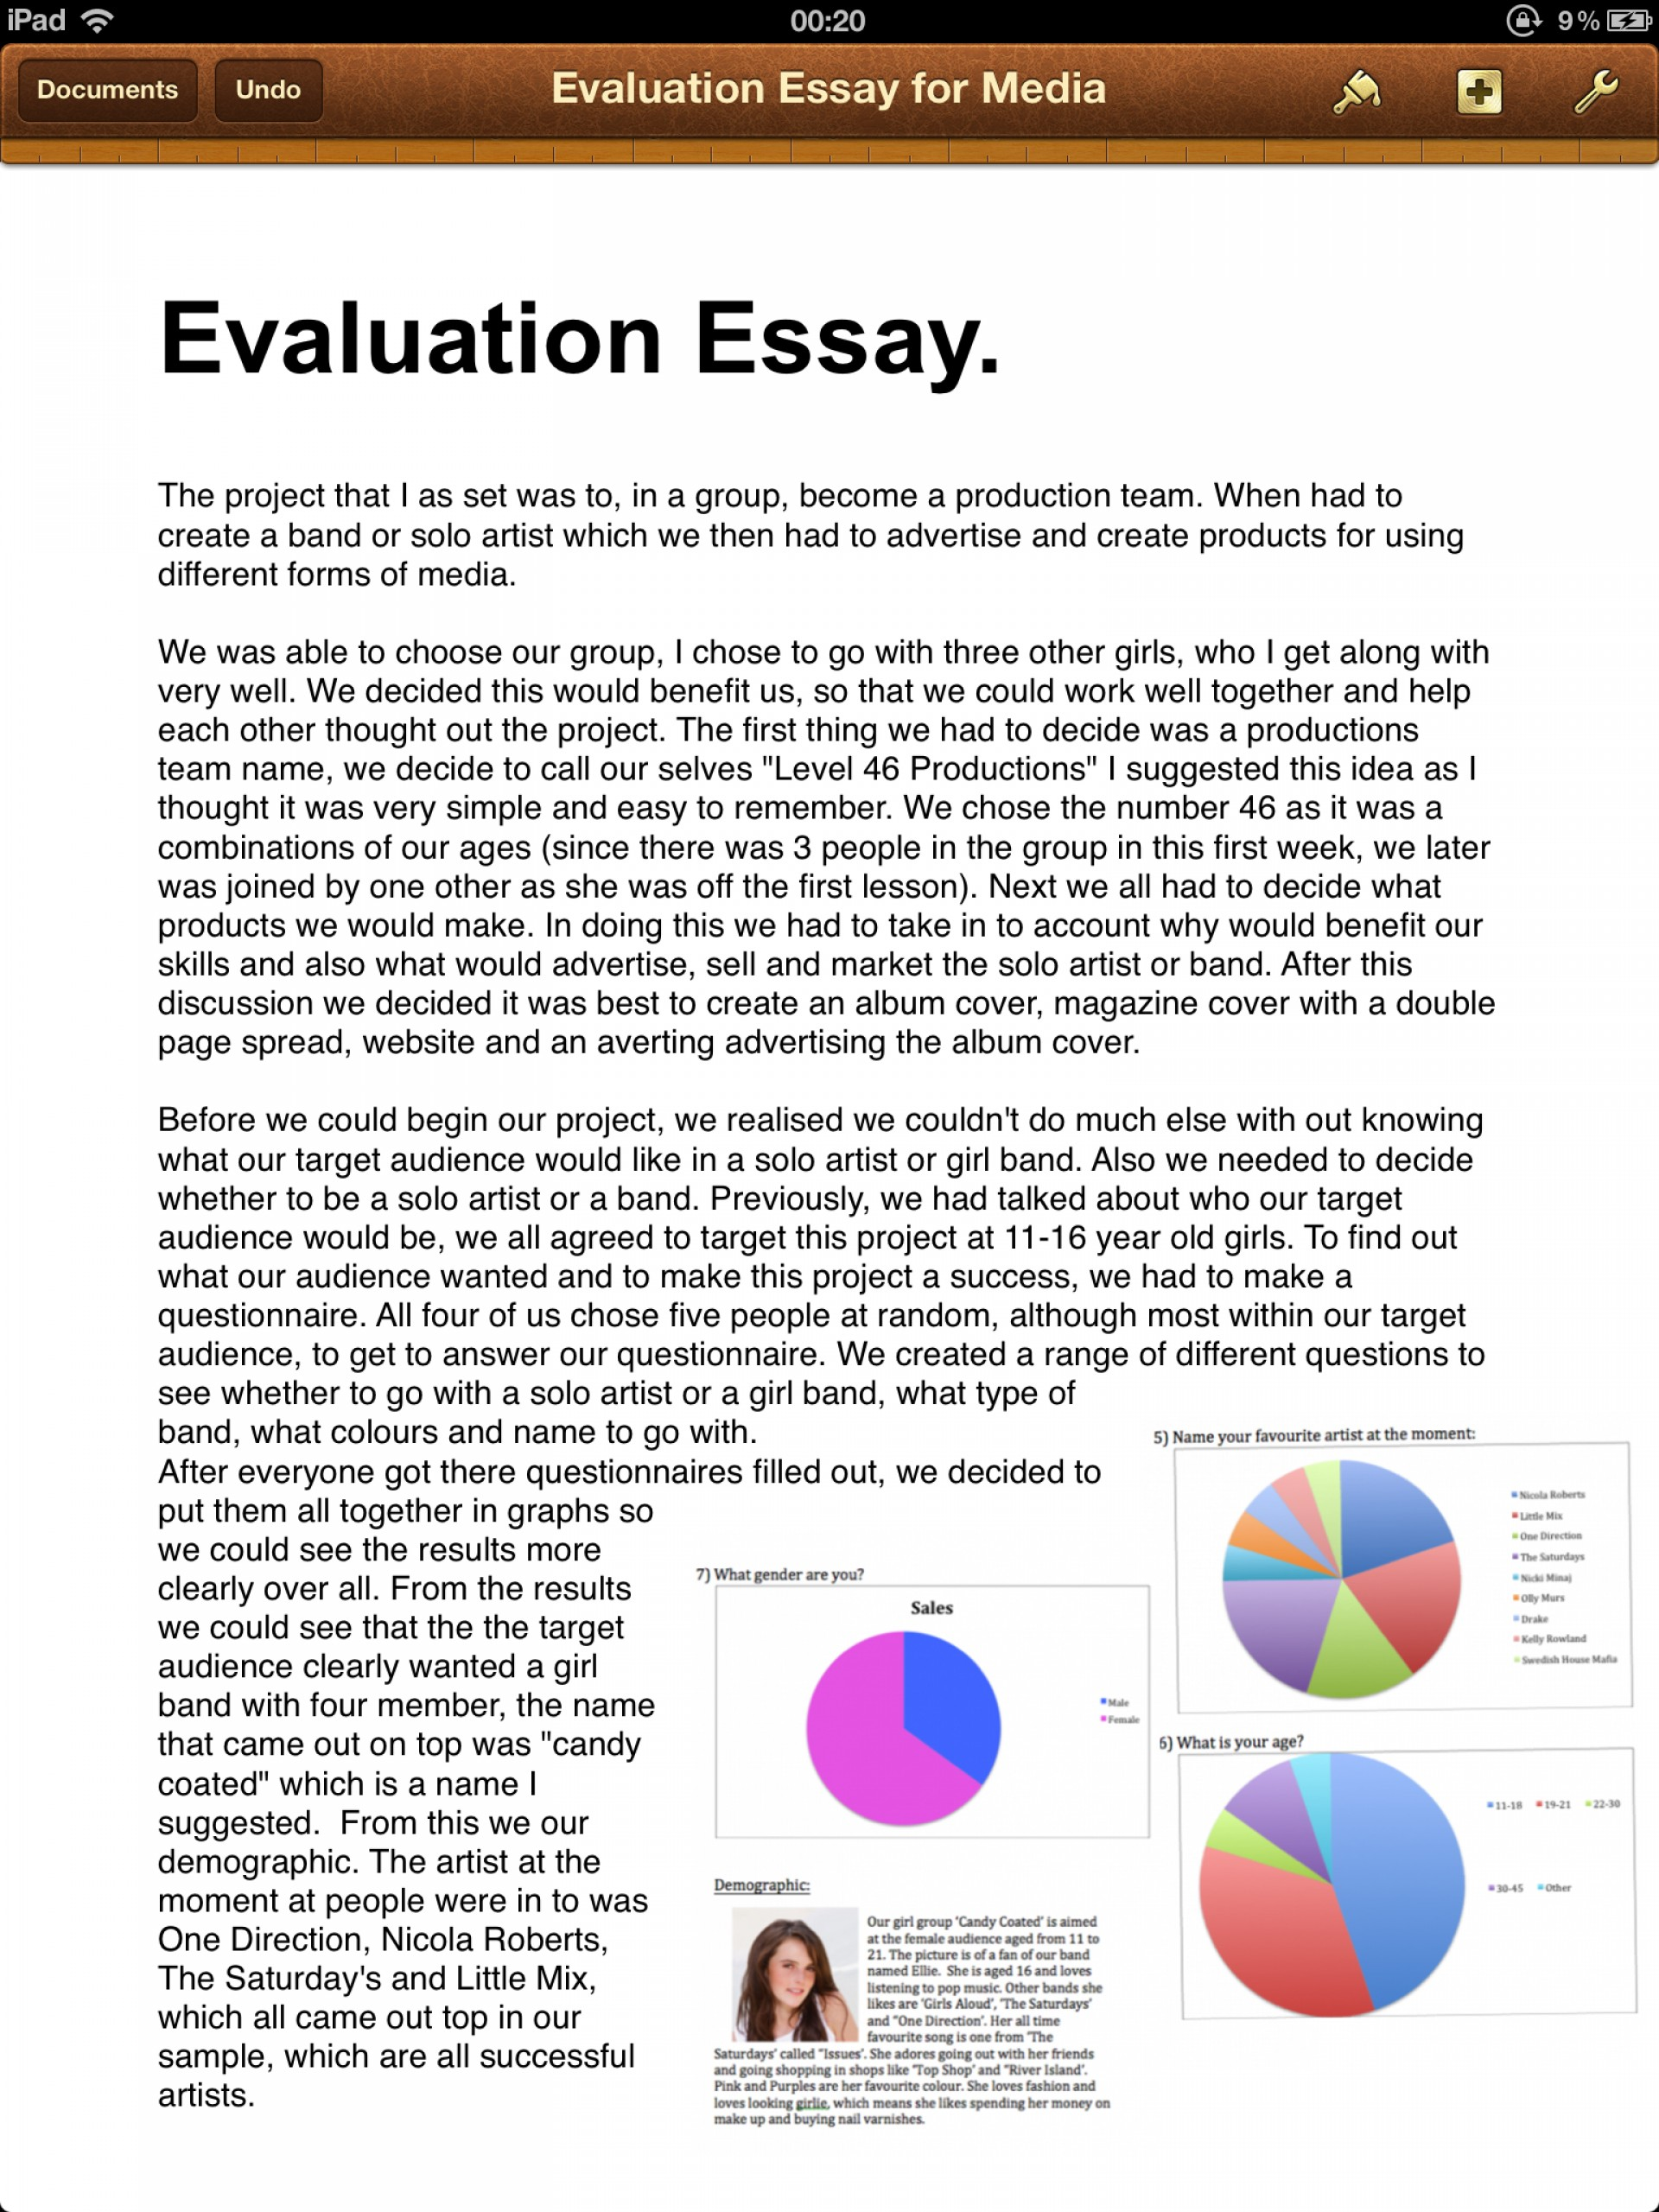 015 How To Write An Evaluation Essay Pg Outstanding Sample On A Movie Restaurant 1920